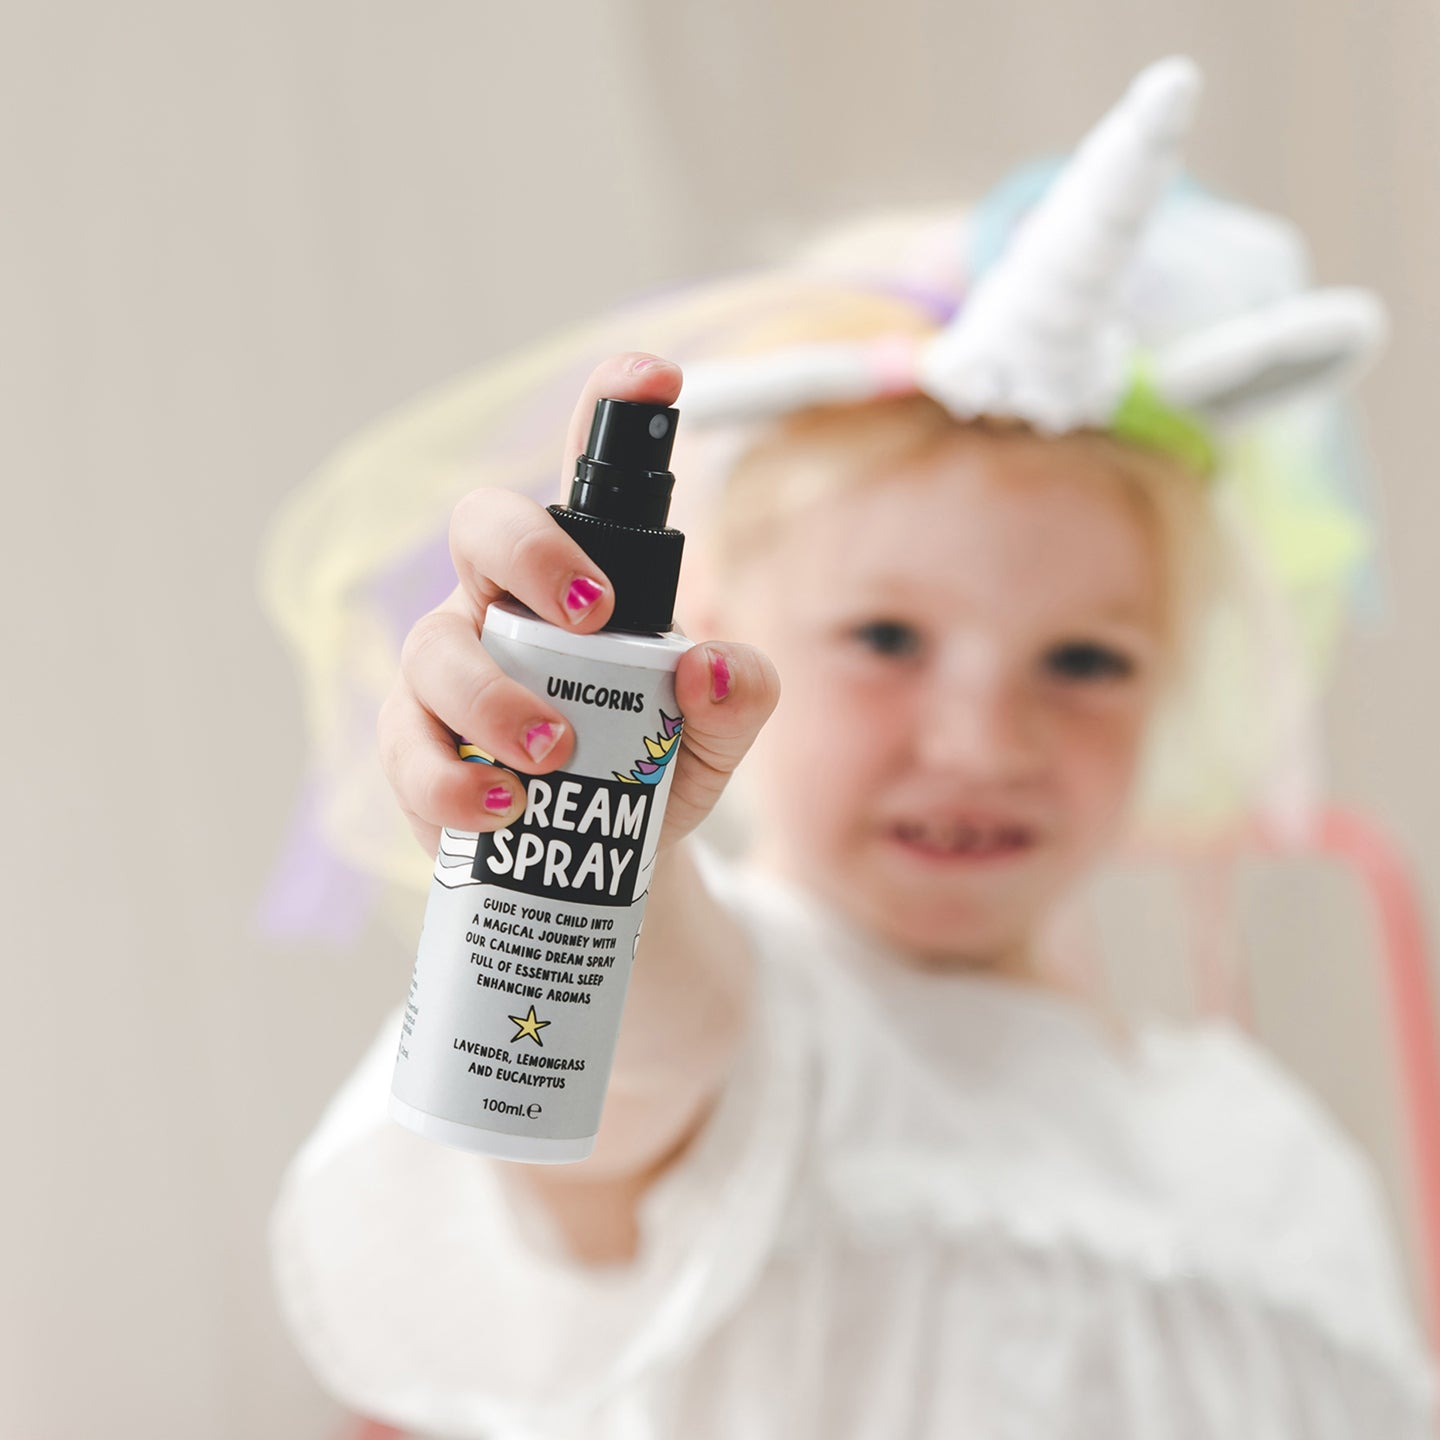 Unicorns Sleep Spray